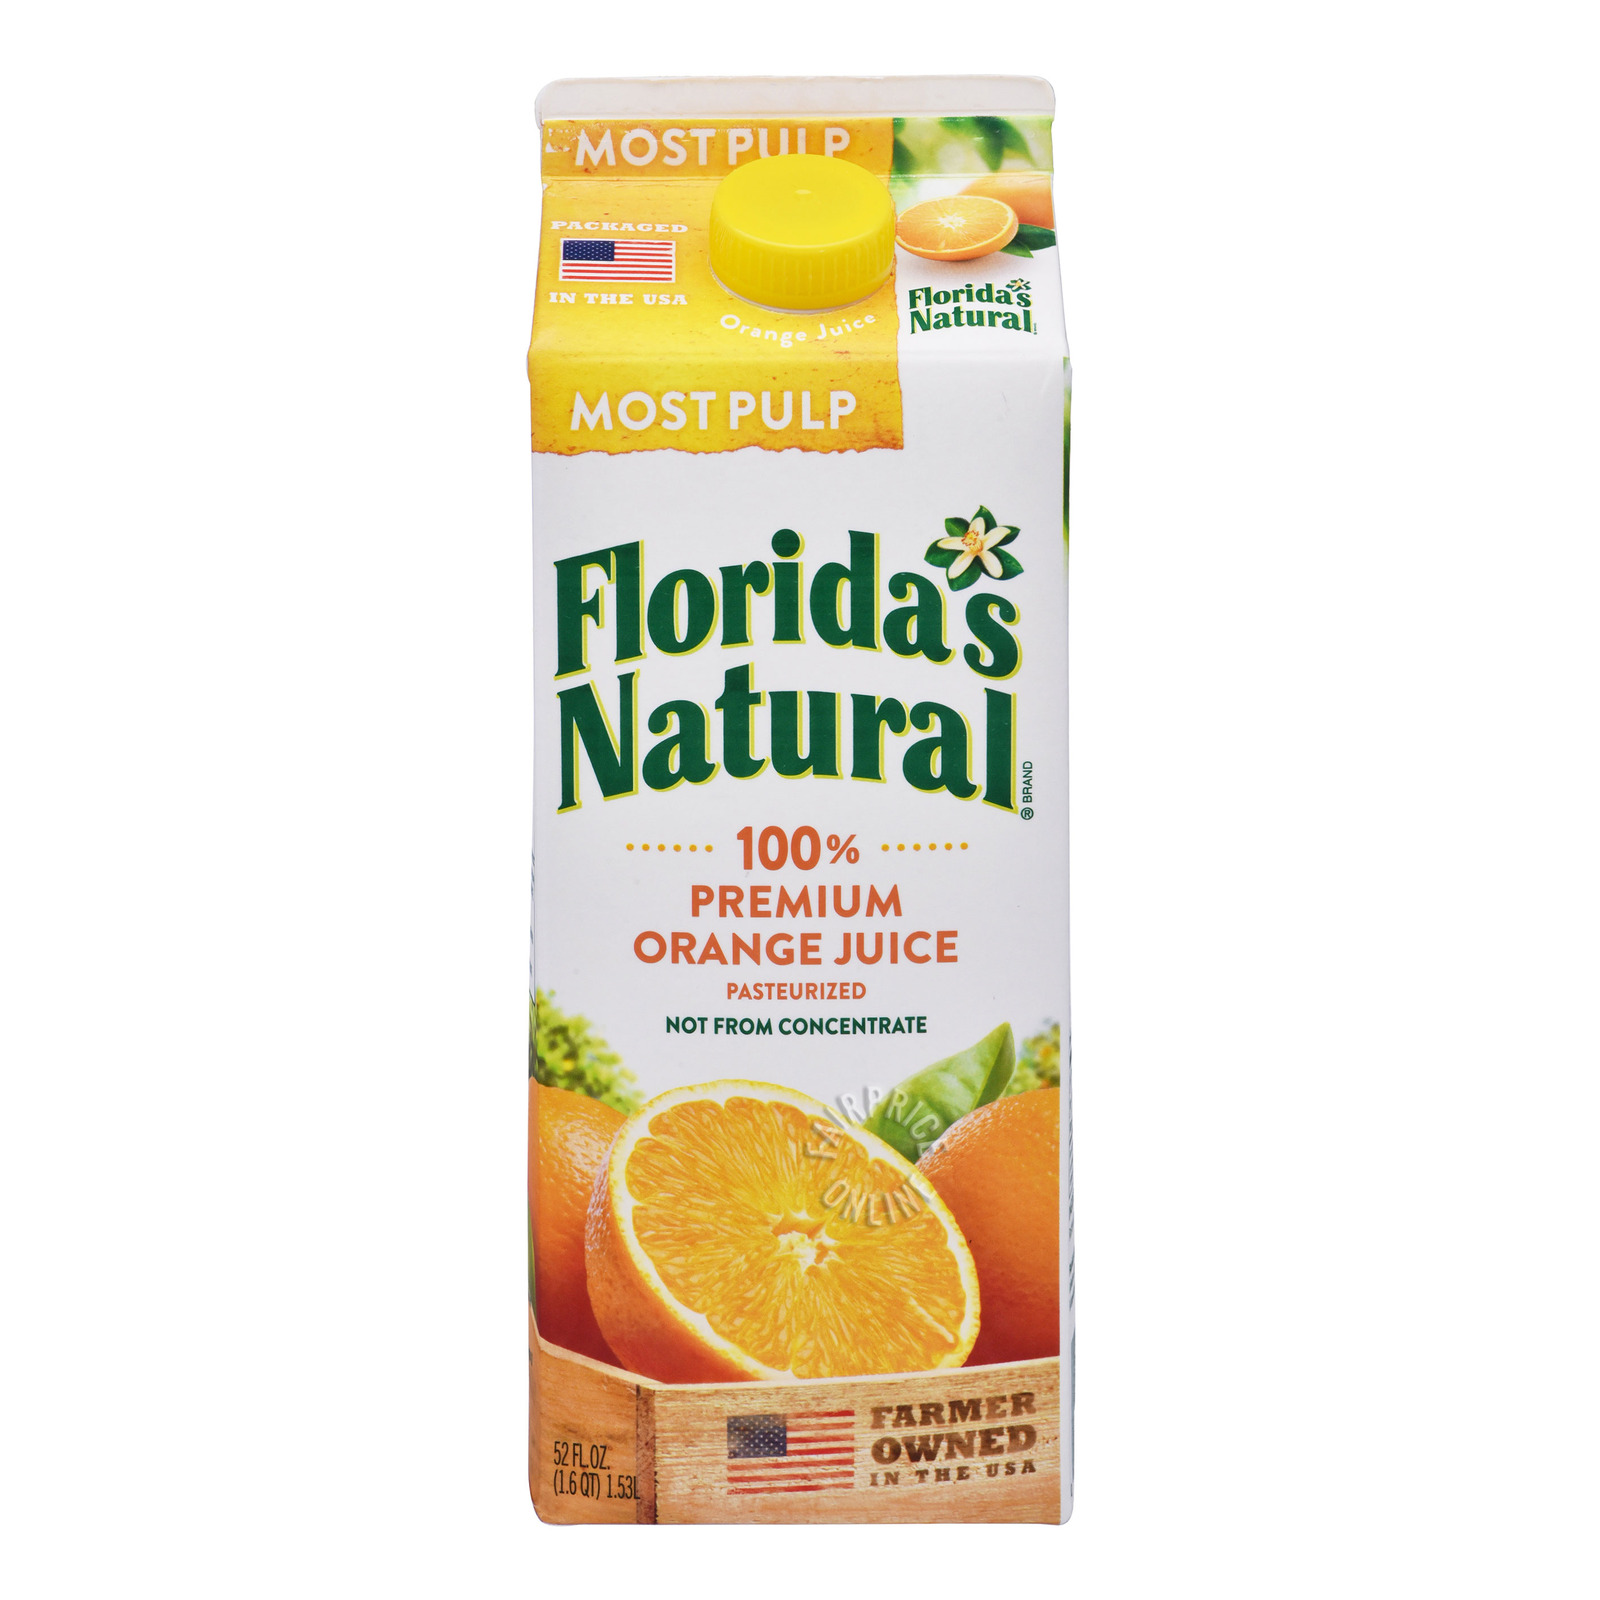 Florida's Natural 100% Orange Juice - Most Pulp